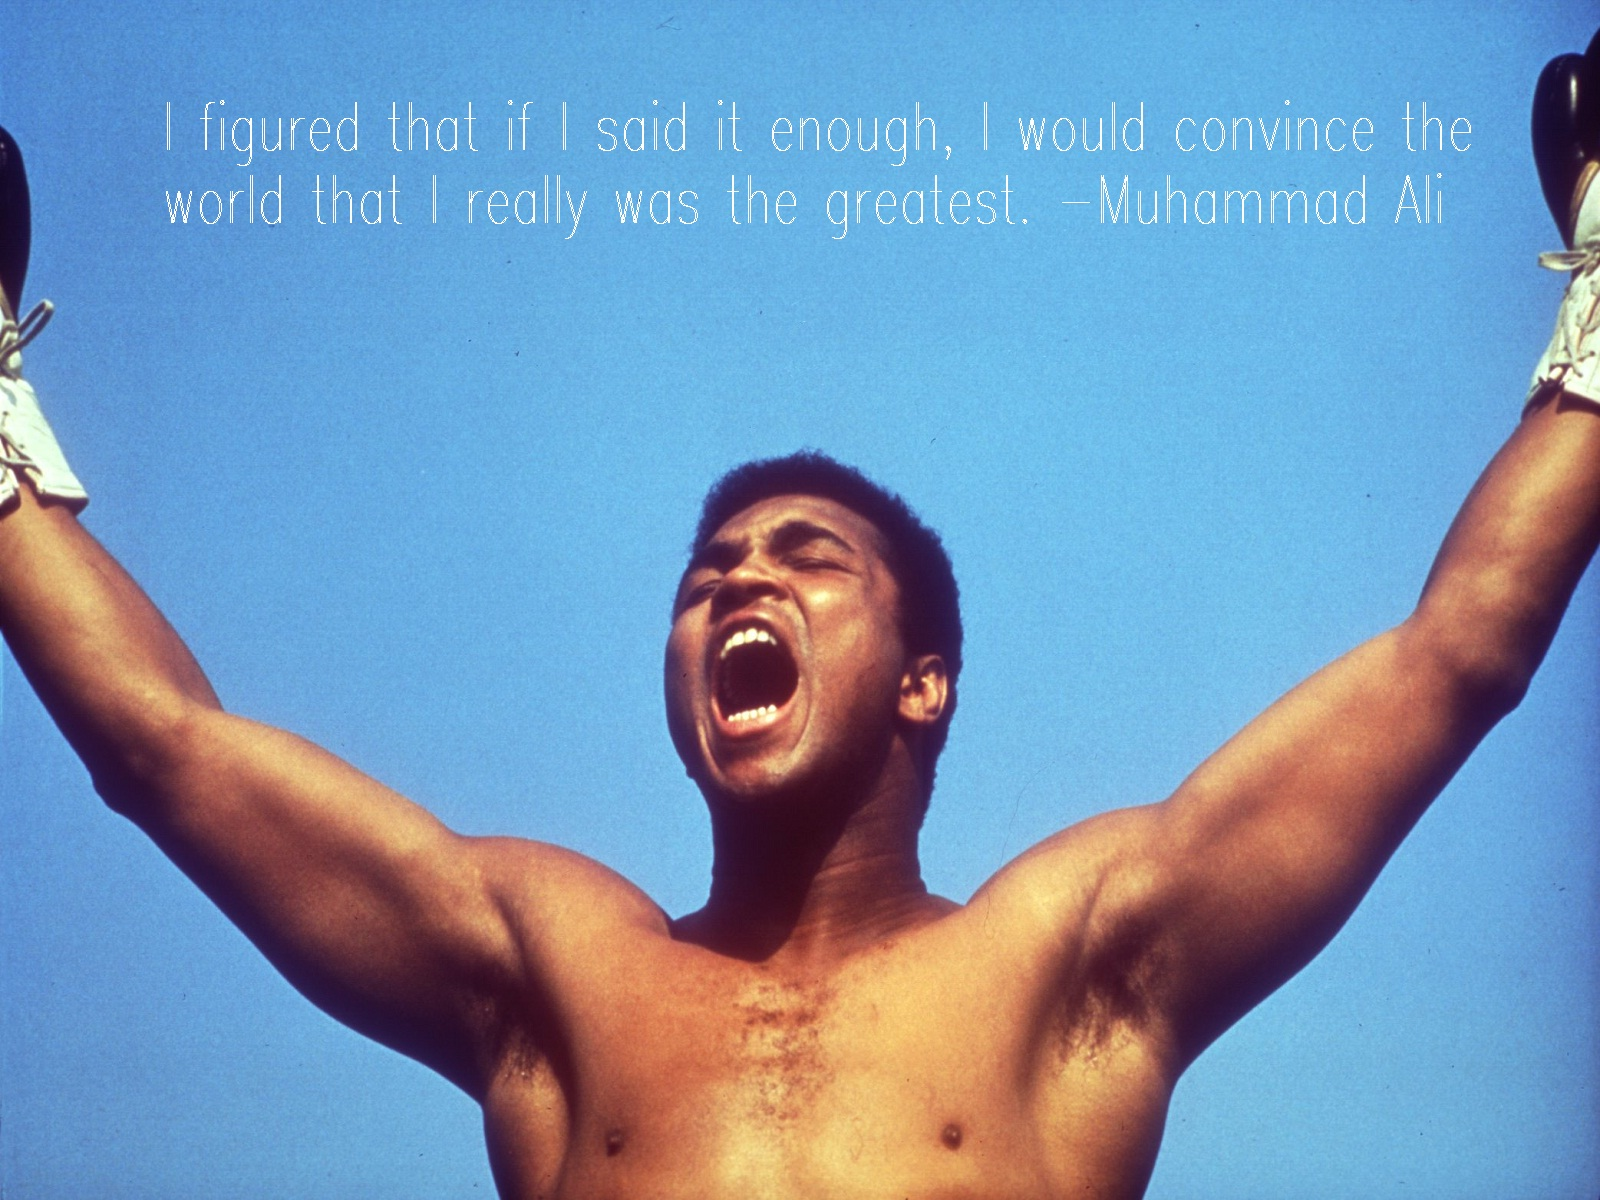 http://4.bp.blogspot.com/-F18IC6zfnPE/Tnp5LVroIlI/AAAAAAAABRY/l1uCftAqKPs/s1600/Muhammed_Ali_Quotes_HD_Photos_Desktop_Wallpapers_Vvallpaper.net.jpg